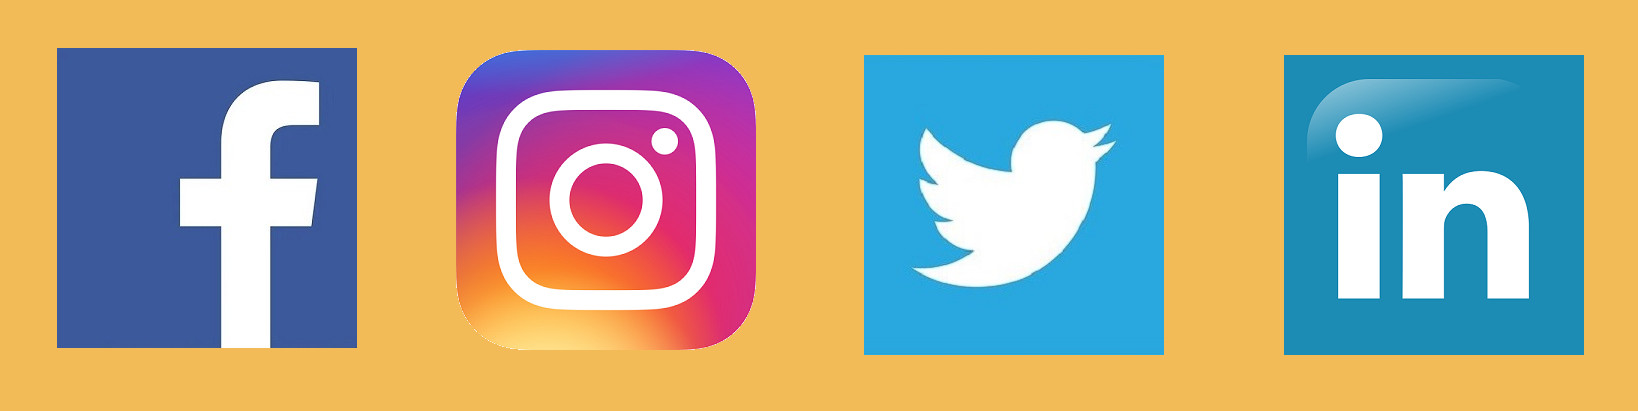 Facebook, Instagram, Twitter en Linked In logo's